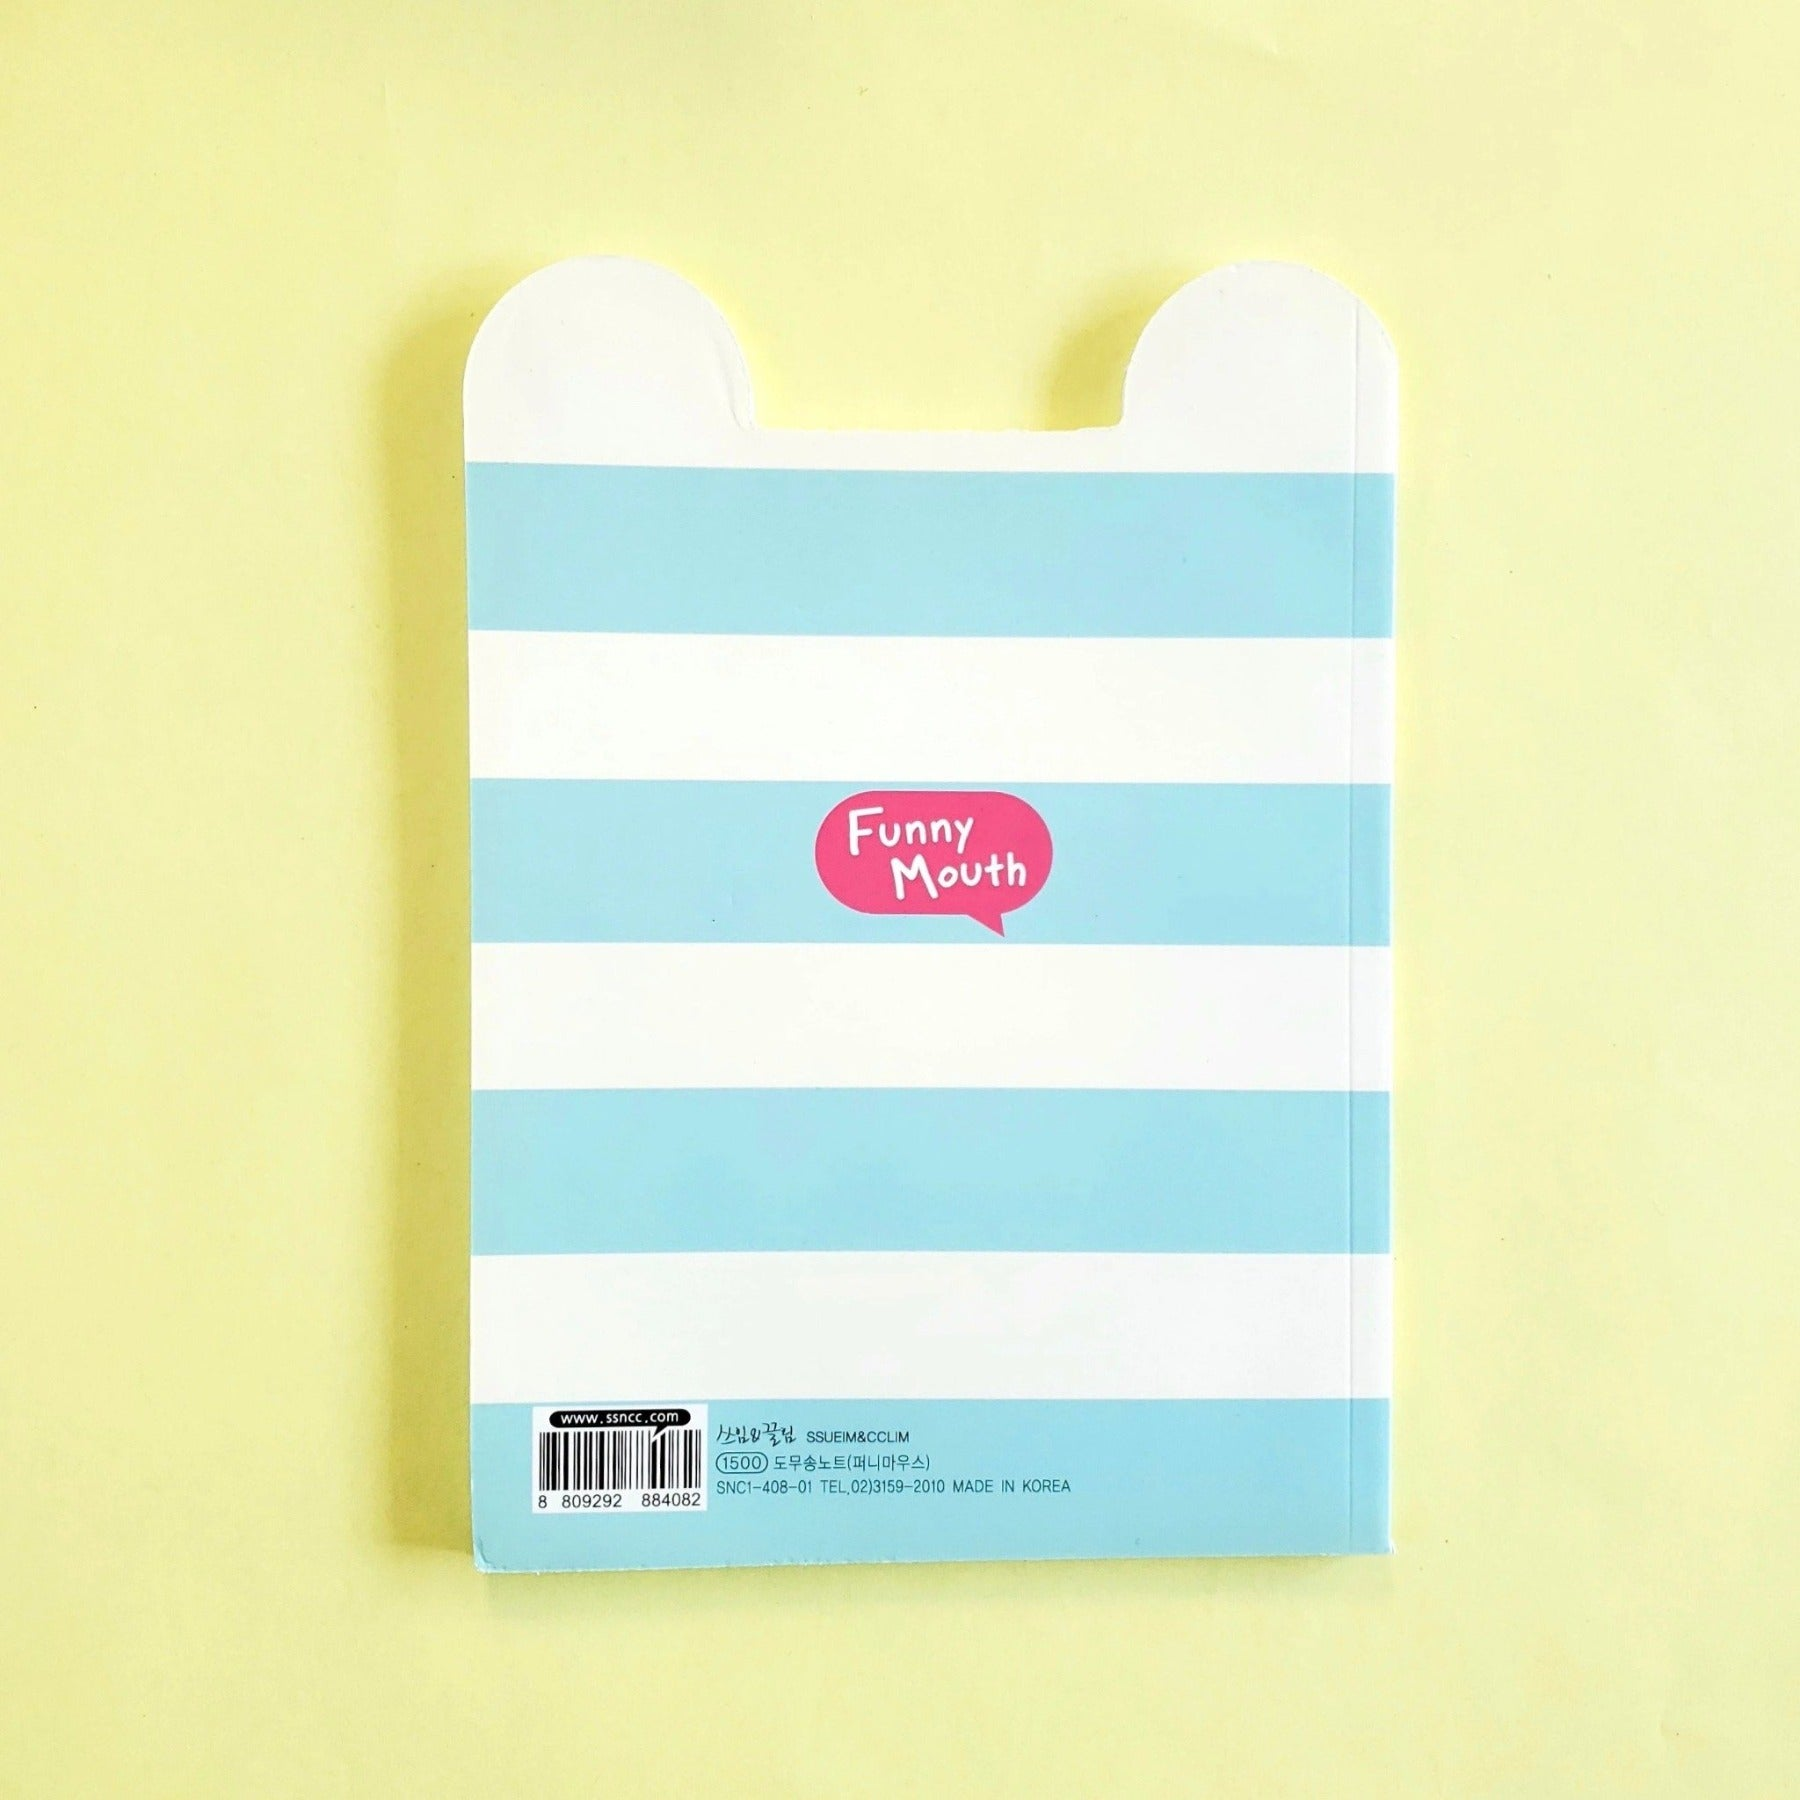 kawaii korean stationery by ssueim & cclim: funny mouth notebook with blue strips (back cover)